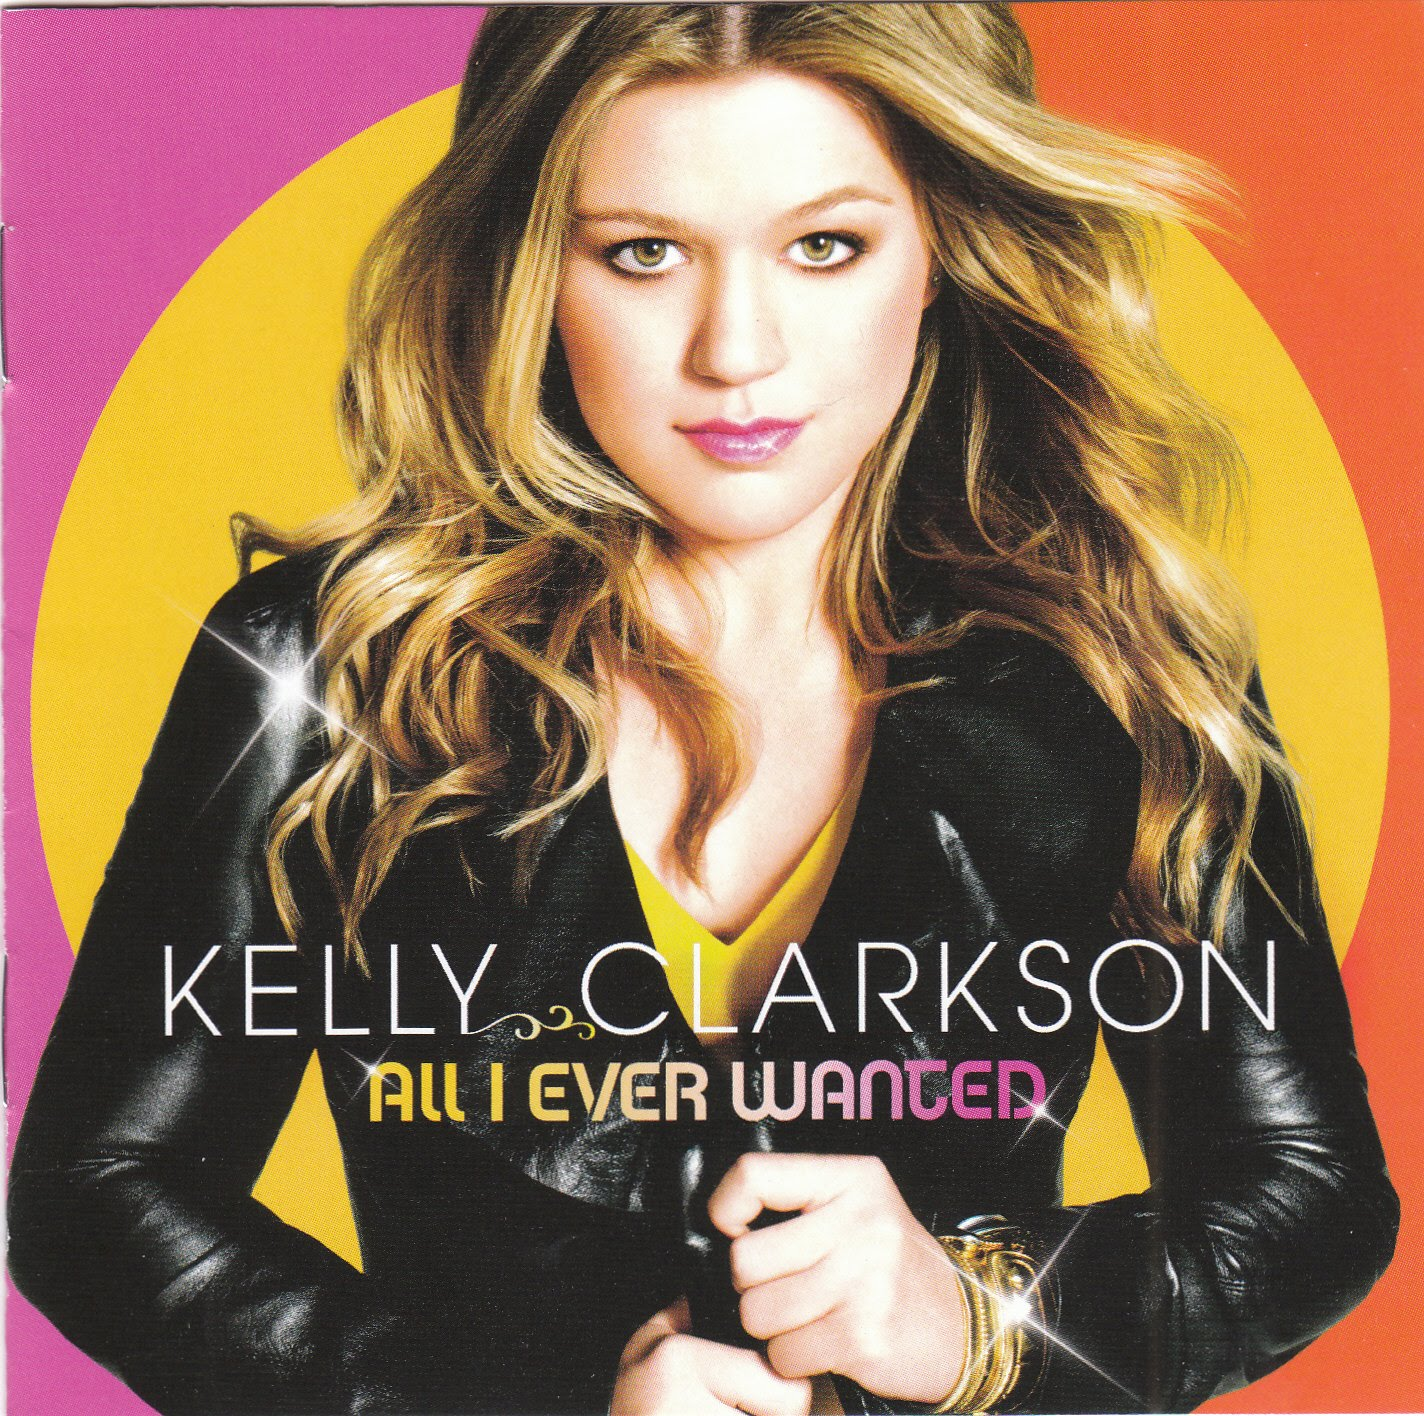 http://1.bp.blogspot.com/_fJ3i0zTzELk/TEqBut92WxI/AAAAAAAAAGs/NQhnQFkwl2E/s1600/Kelly+Clarkson+-+All+I+Ever+Wanted.jpg